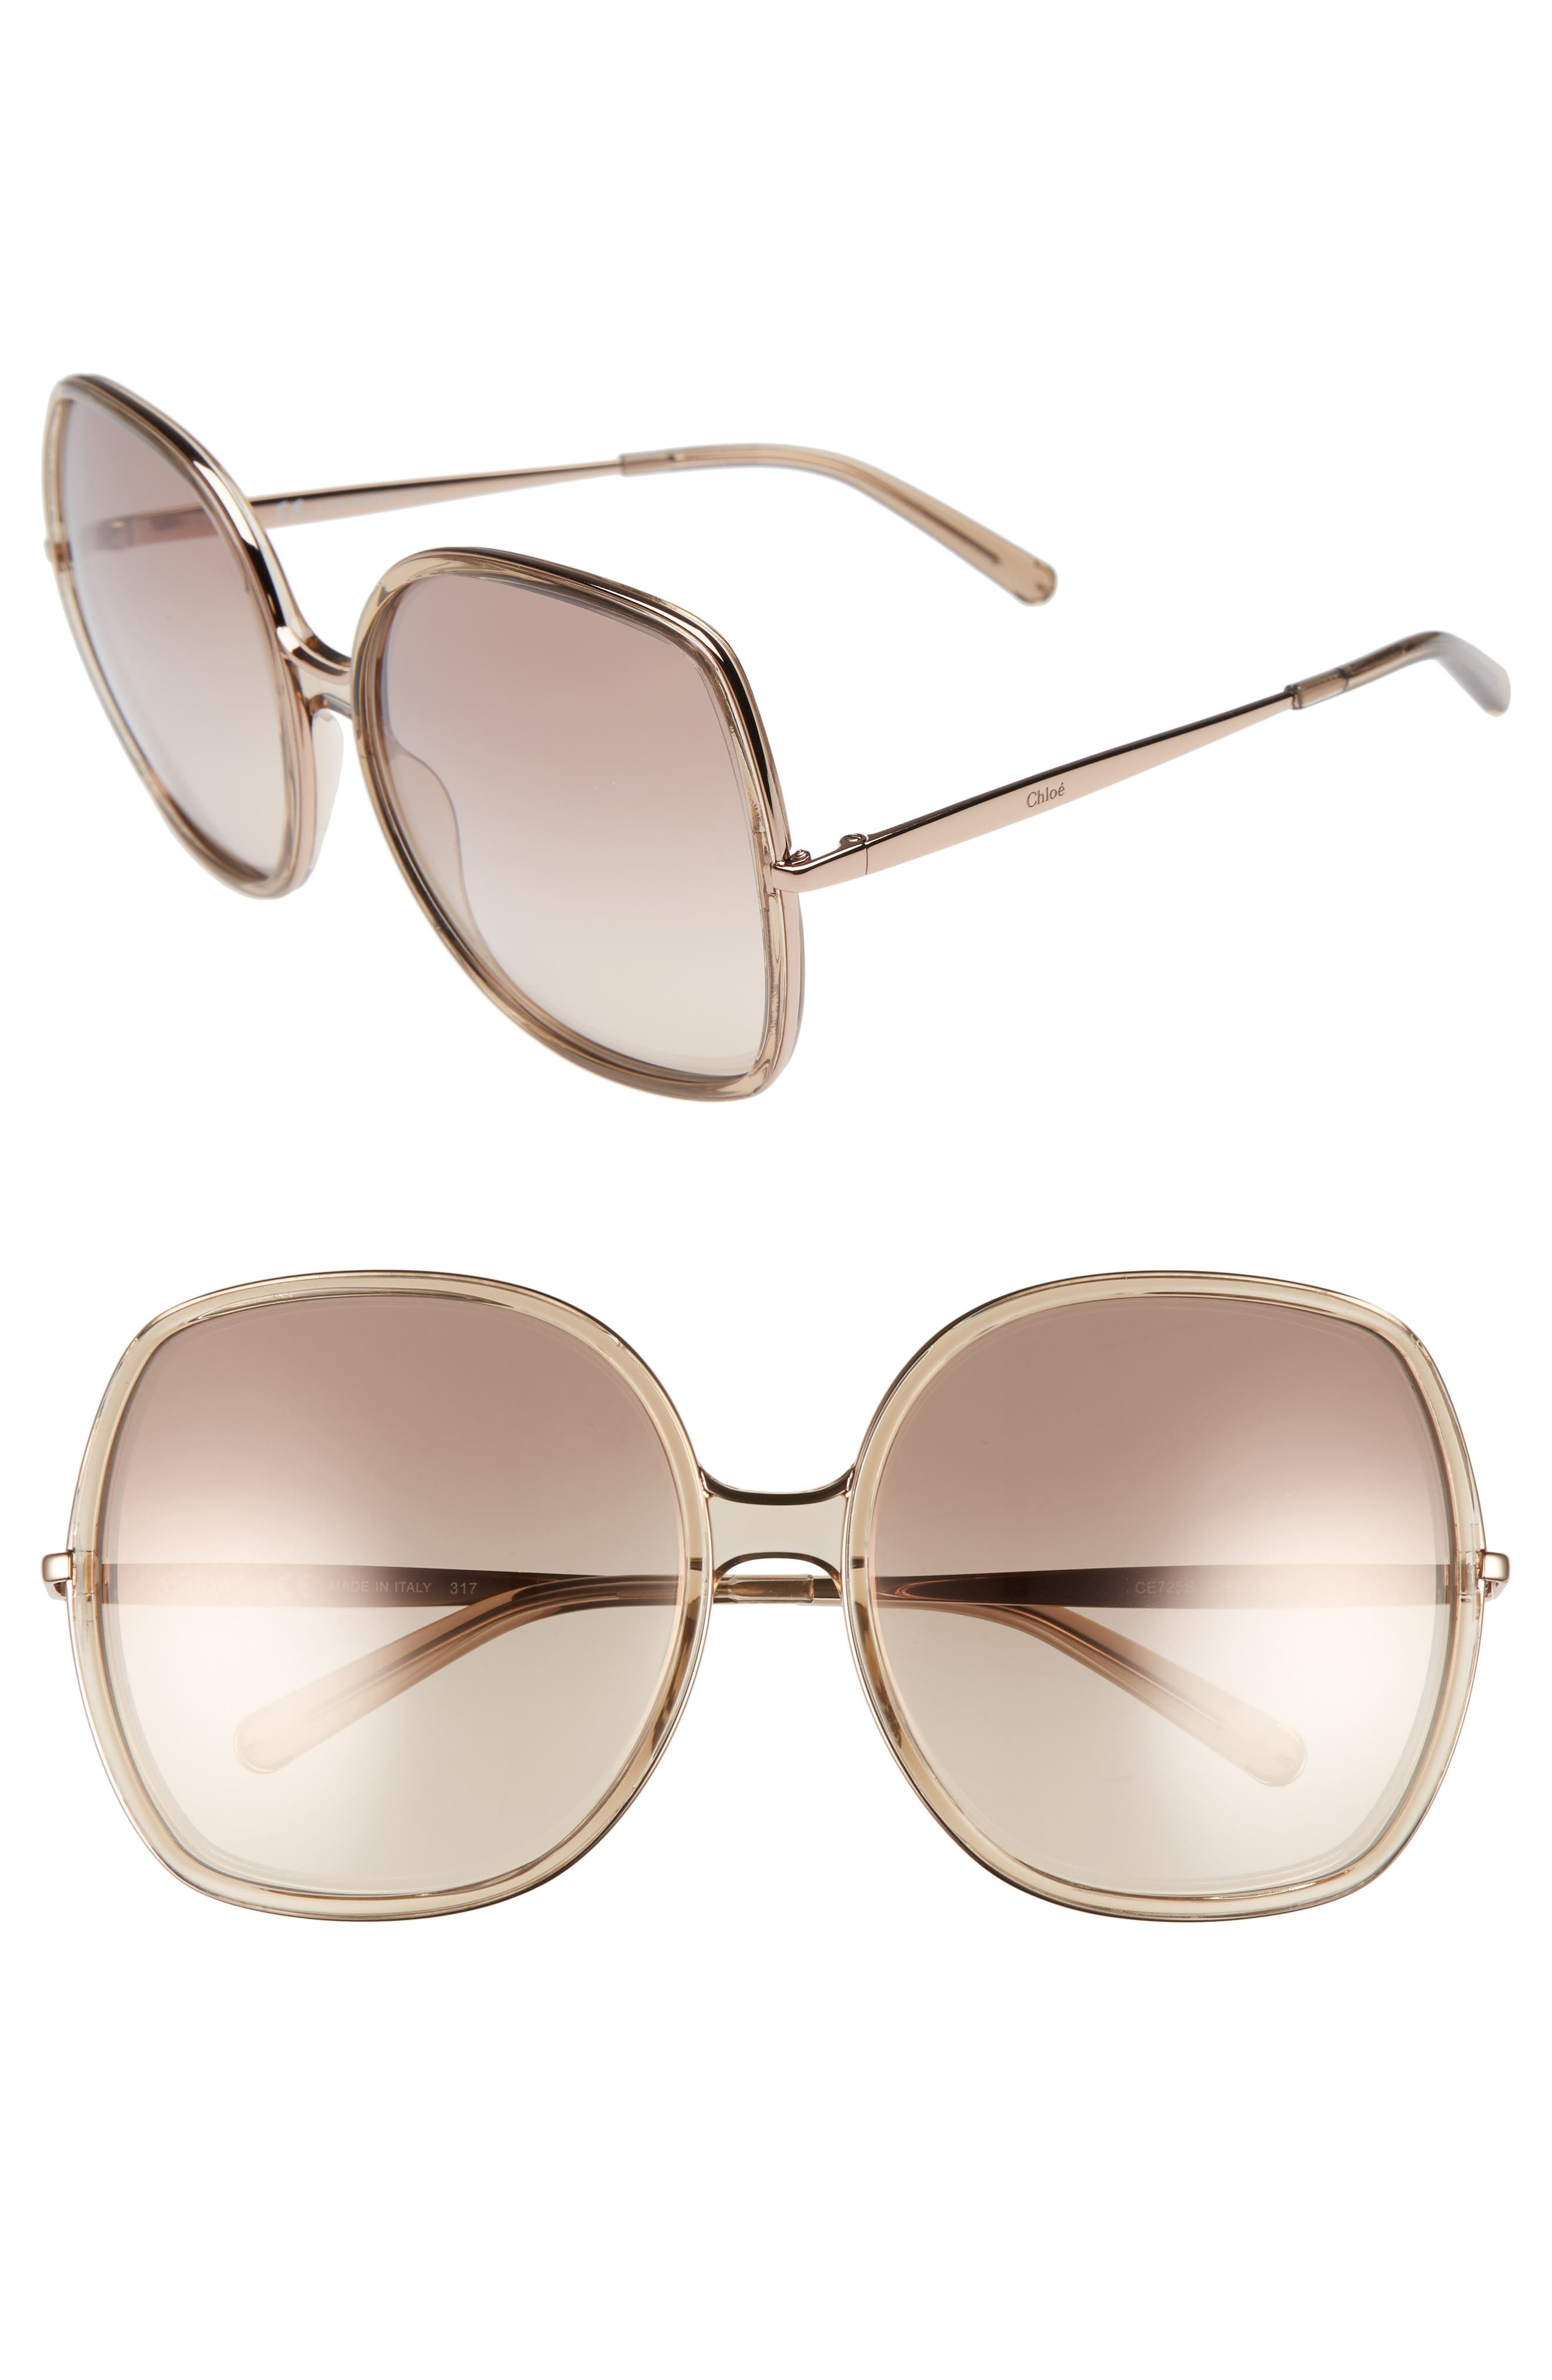 62mm Oversized Gradient Lens Square Sunglasses,                             Main thumbnail 1, color,                             NUDE